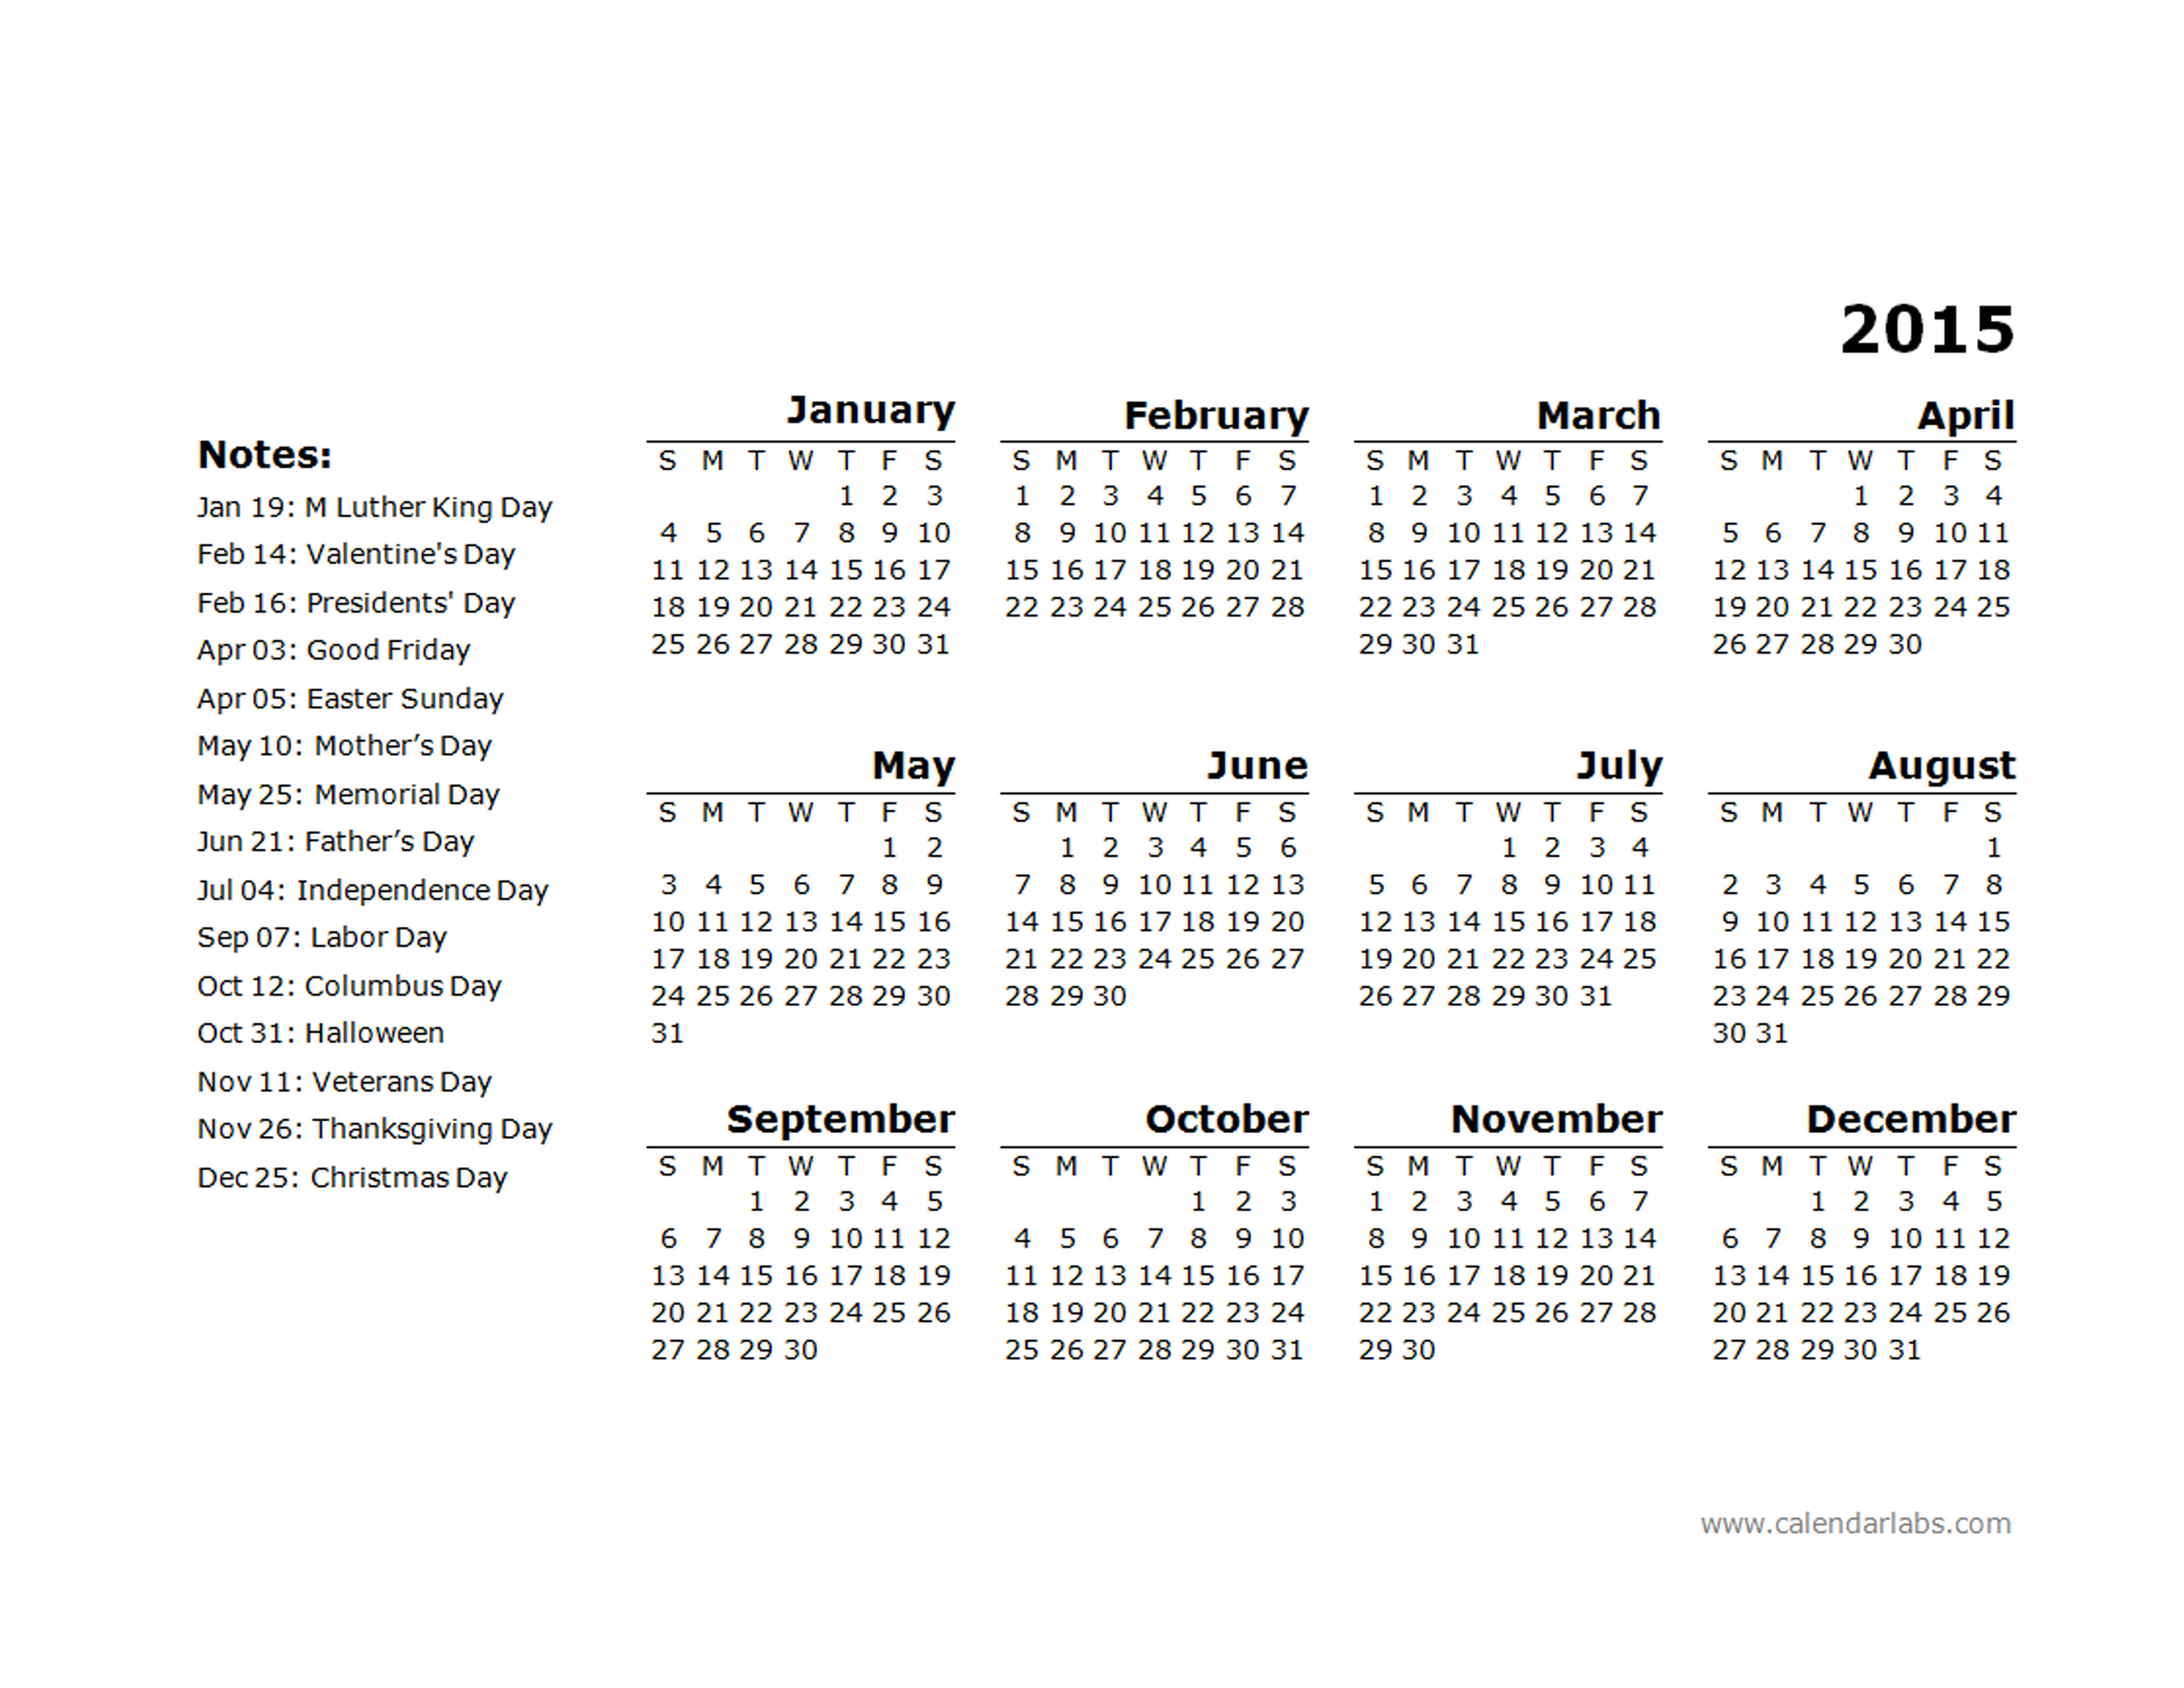 2015 yearly calendar template 11 free printable templates for 2015 yearly calendar template in landscape format